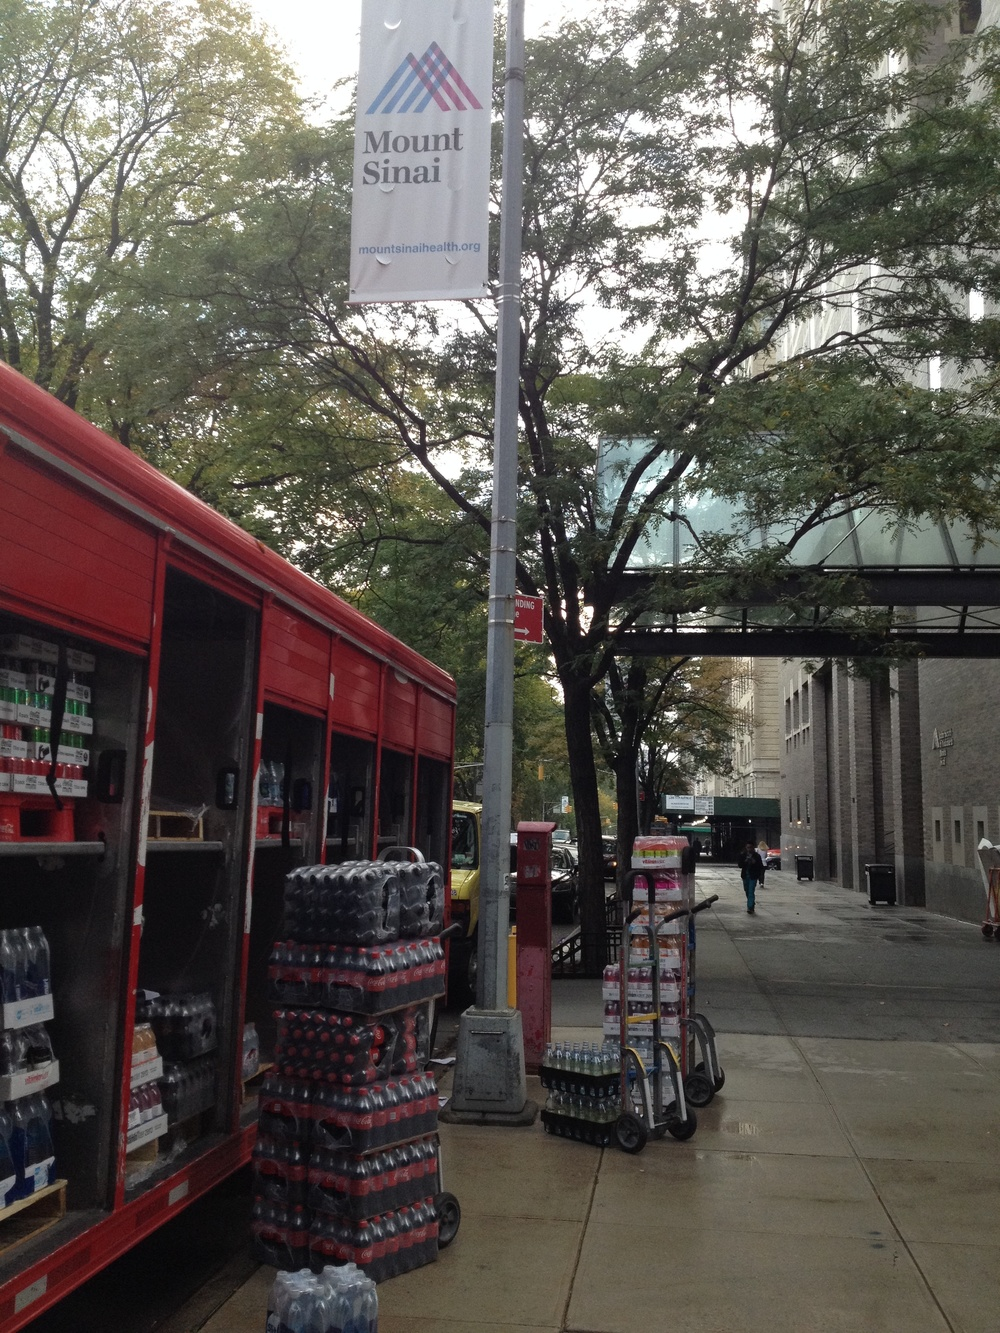 A truckload of coke products is dropped off at Mt. Sinai's Fifth Avenue entrance.